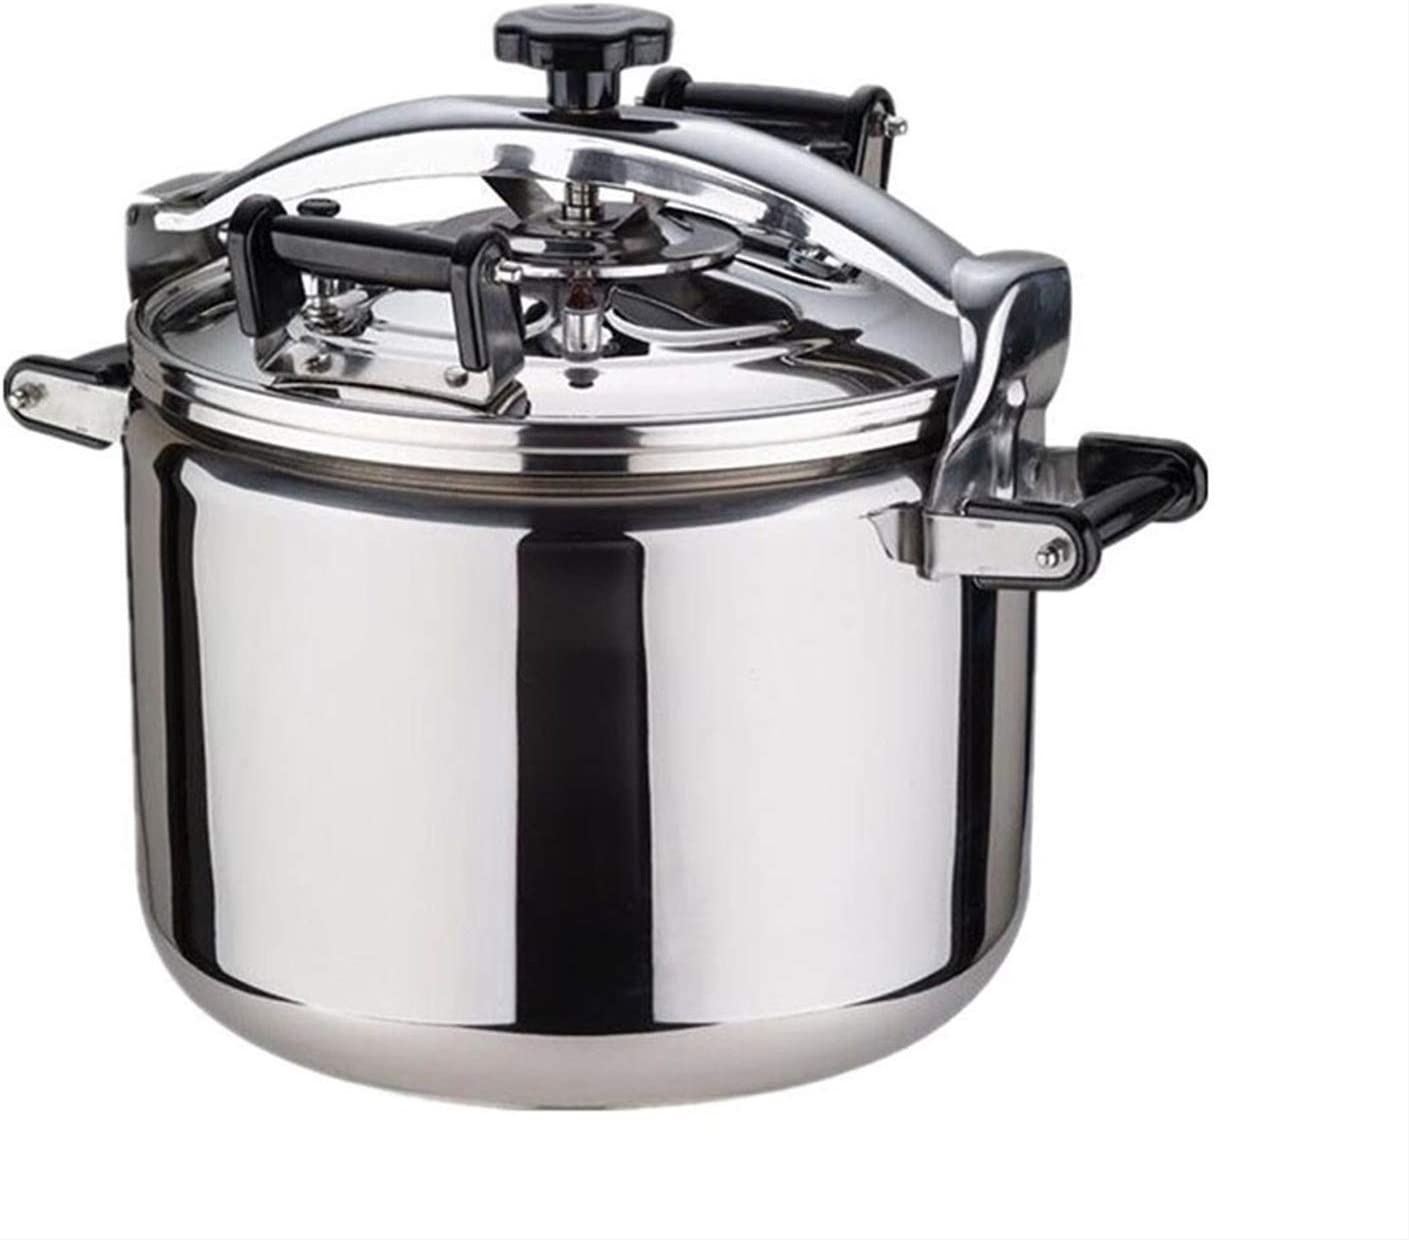 ZBINGAFF Pressure Cooker, 304 Stainless Steel Pressure Cooker, Thick Explosion-Proof Pressure Cooker, Large Capacity Pressure Cooker, Suitable for School Restaurant Small Food Stalls 22L, 30L, 40L